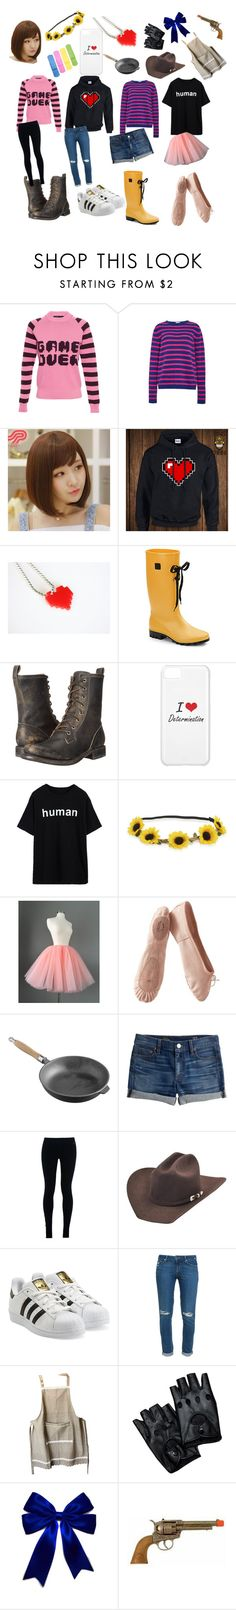 """Undertale: Frisk"" by cartoonvillian ❤ liked on Polyvore featuring American Retro, Stella Jean, Pin Show, Däv, Frye, Aéropostale, Porselli, Viners, J.Crew and NIKE"